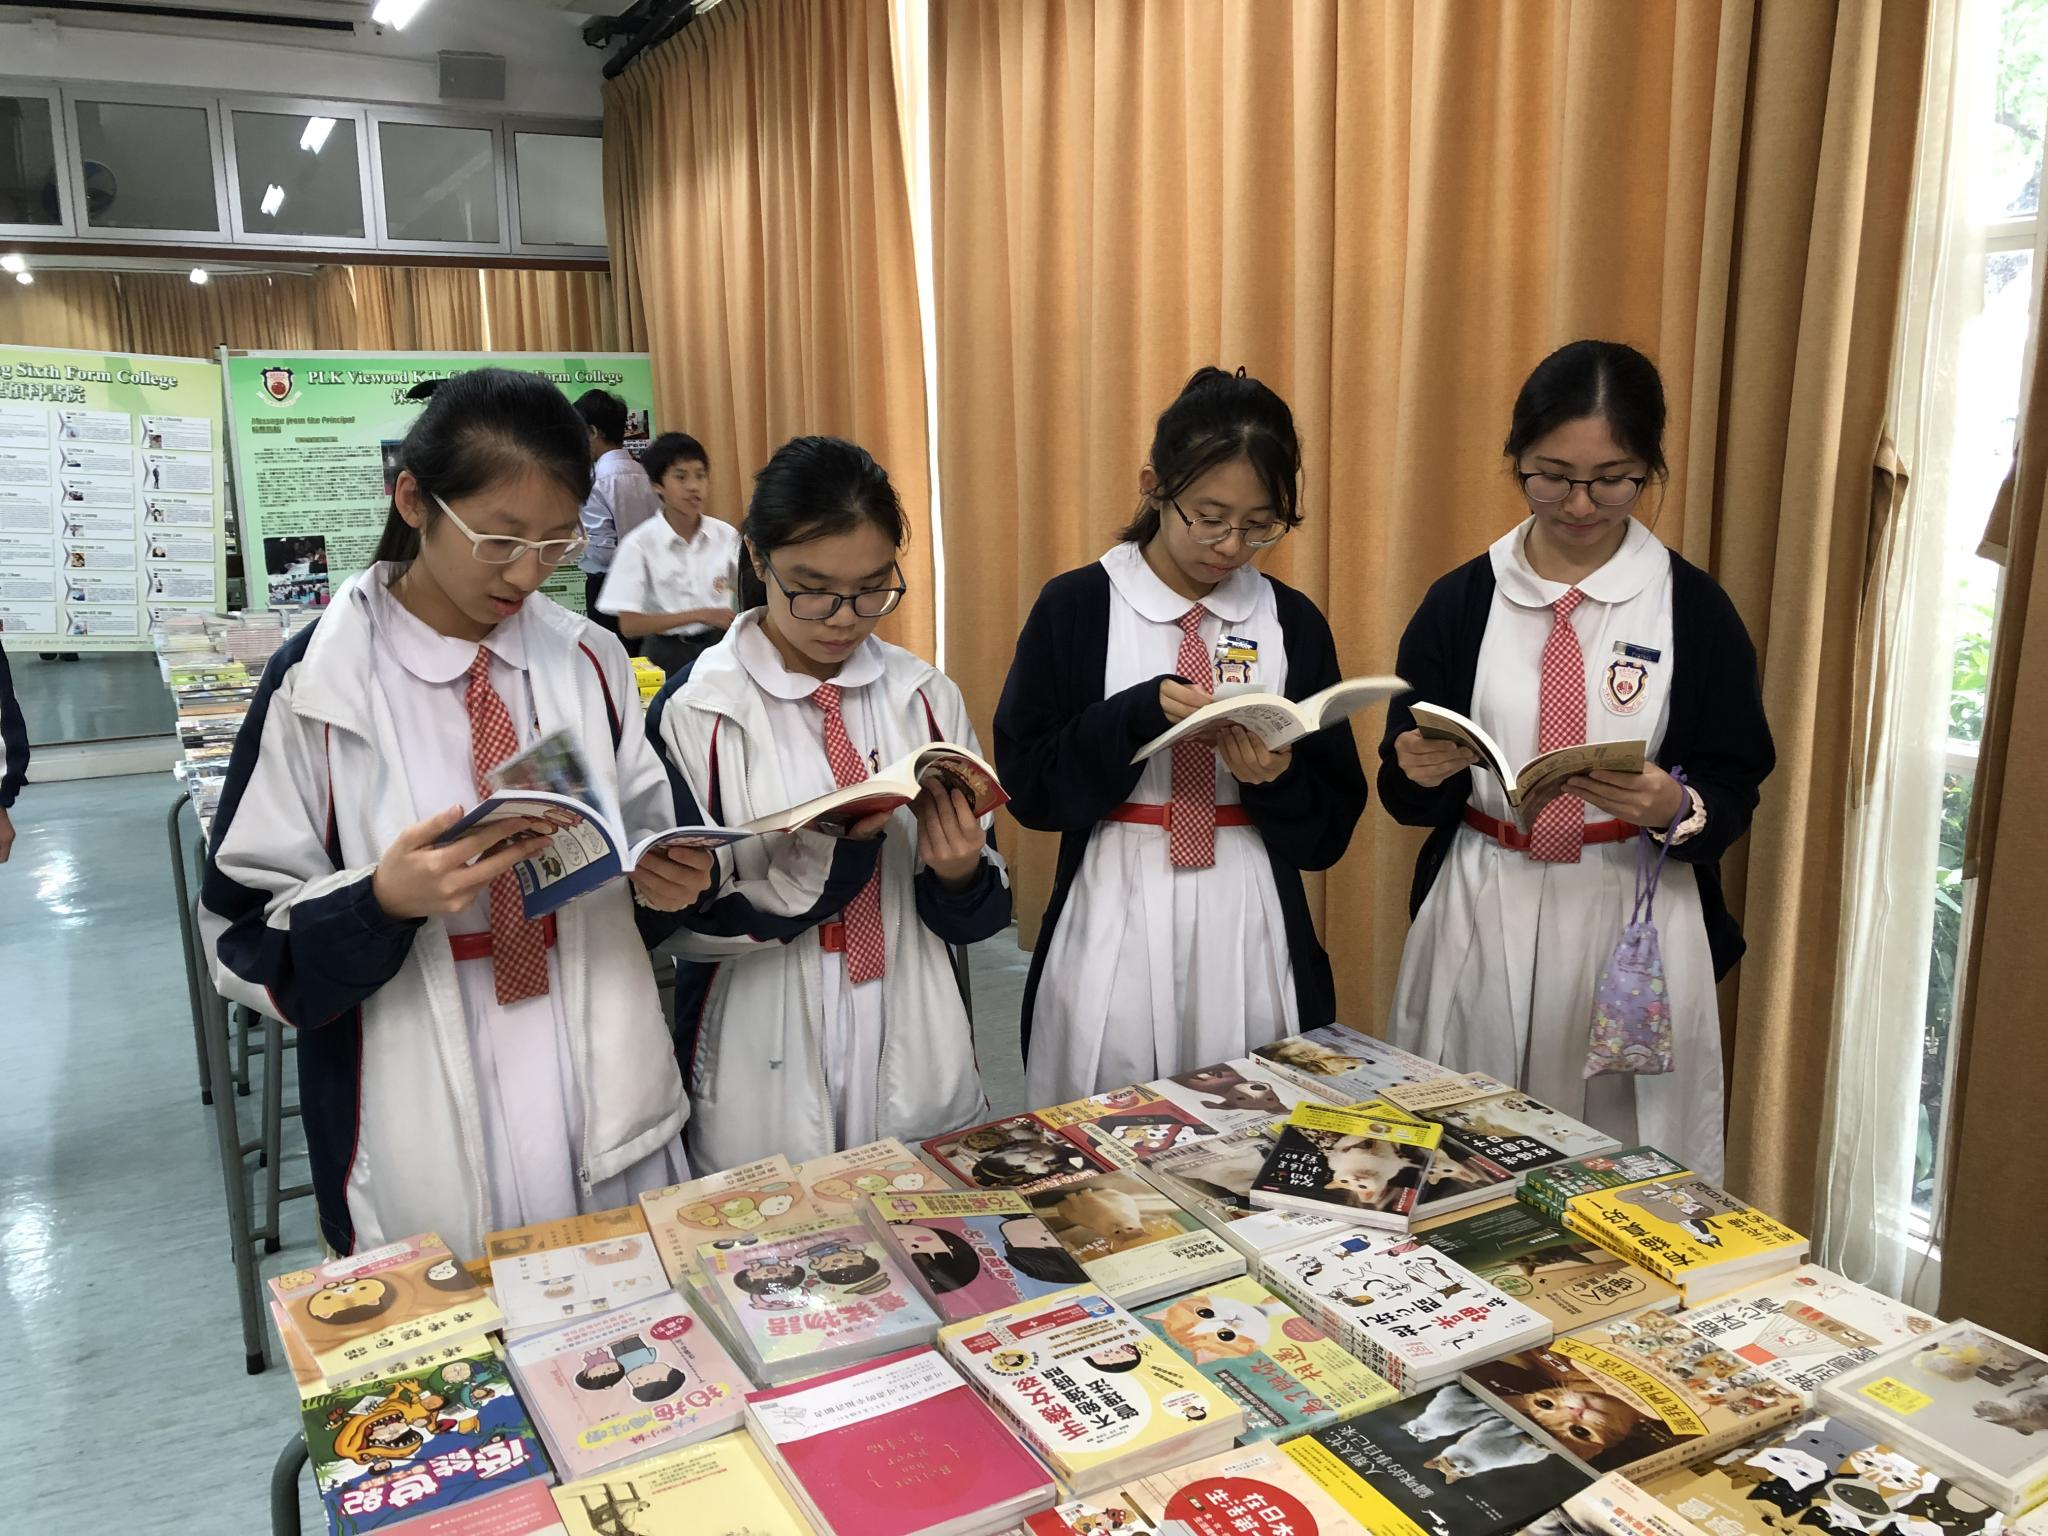 Students are reading their favourite books in the book fair.